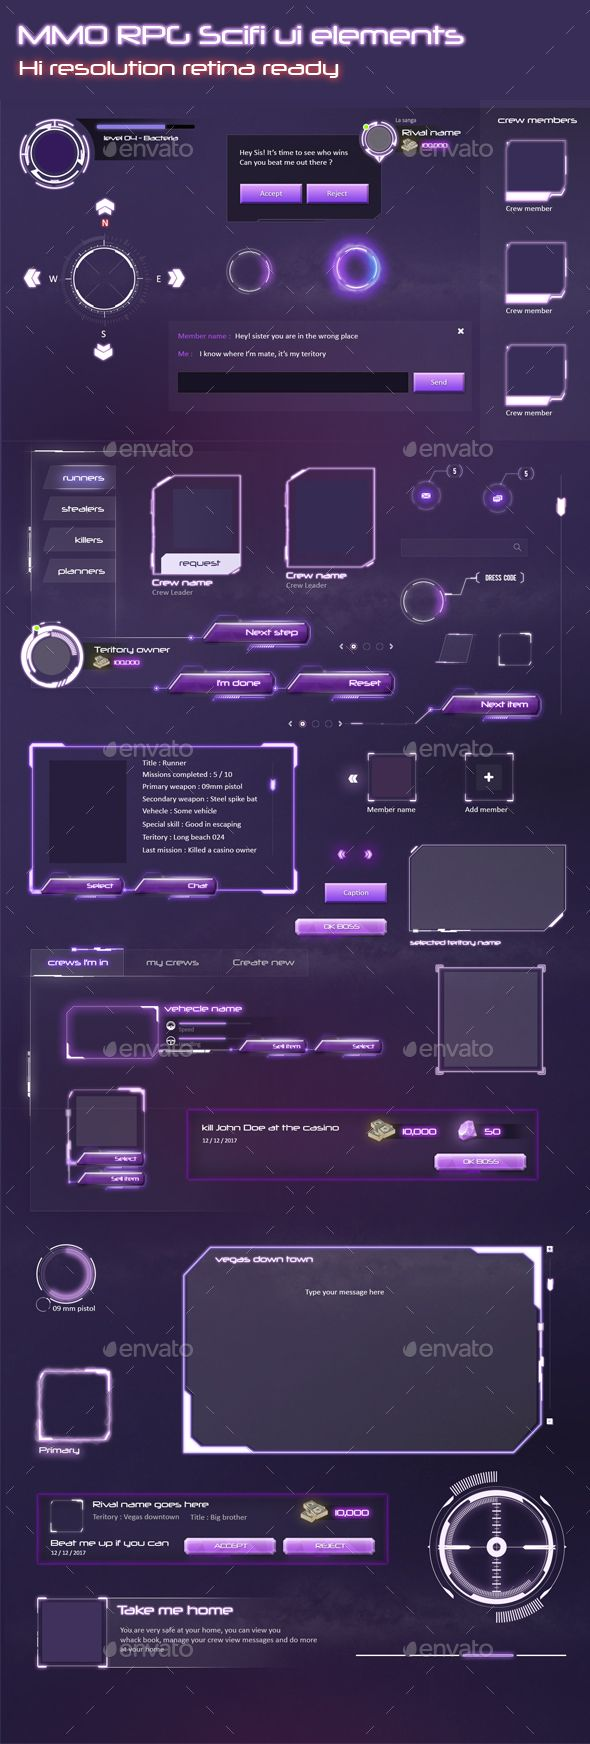 MMO RPG - Sci Fi Game UI Elements - User Interfaces Game Assets | DOWNLOAD: https://graphicriver.net/item/mmo-rpg-sci-fi-game-ui-elements/19790516?ref=sinzo